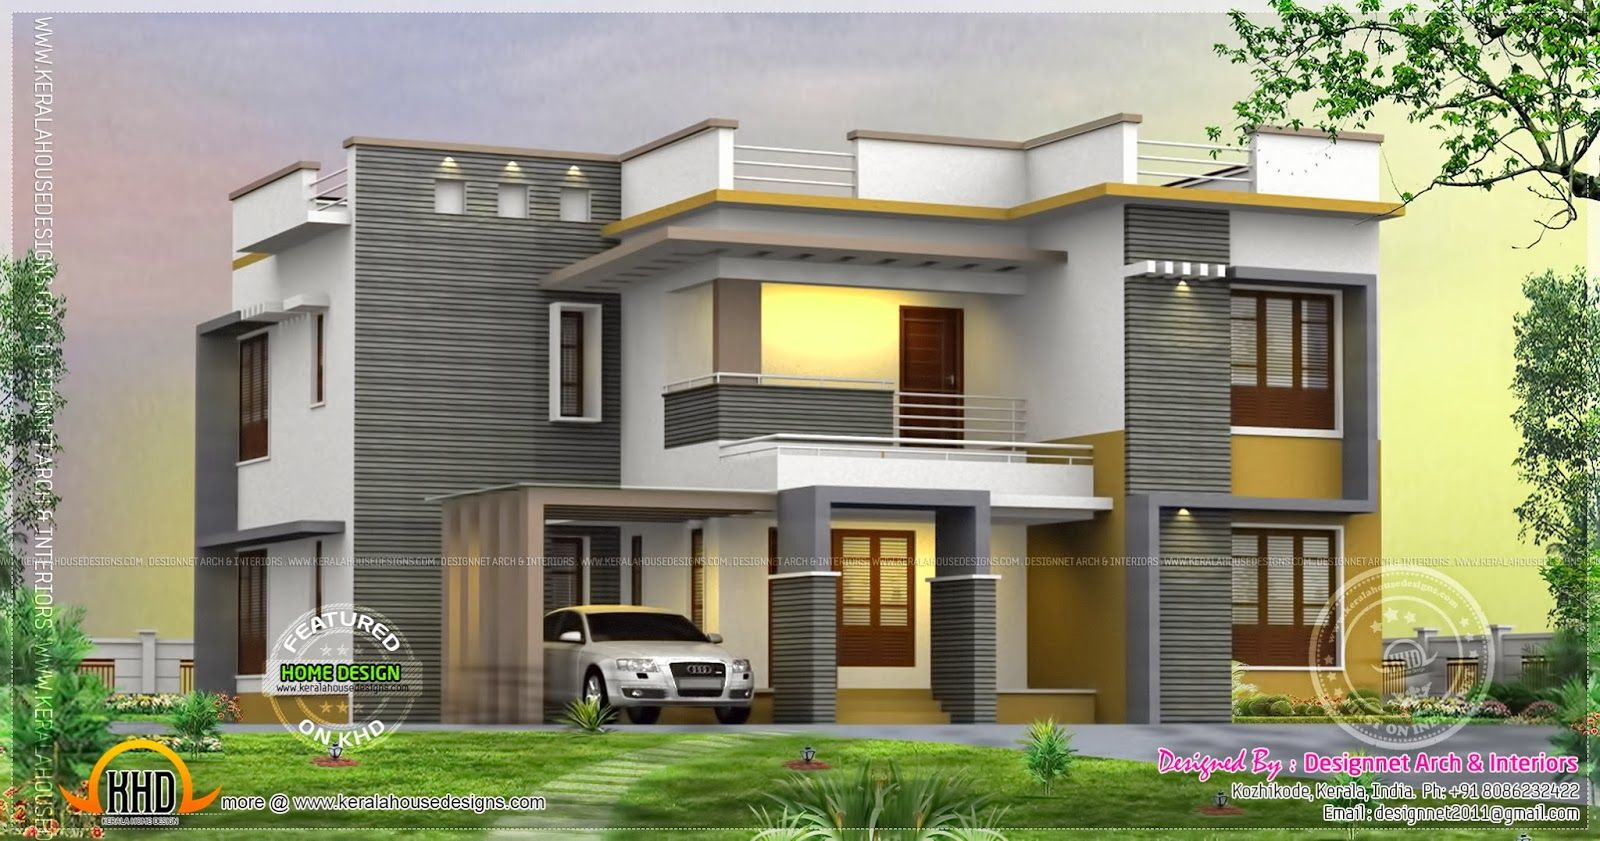 Single storey home flat roof future vertical expansion 6 social side - Flat Roof House Modelos Casas Pinterest Flat Roof House Flat Roof And House